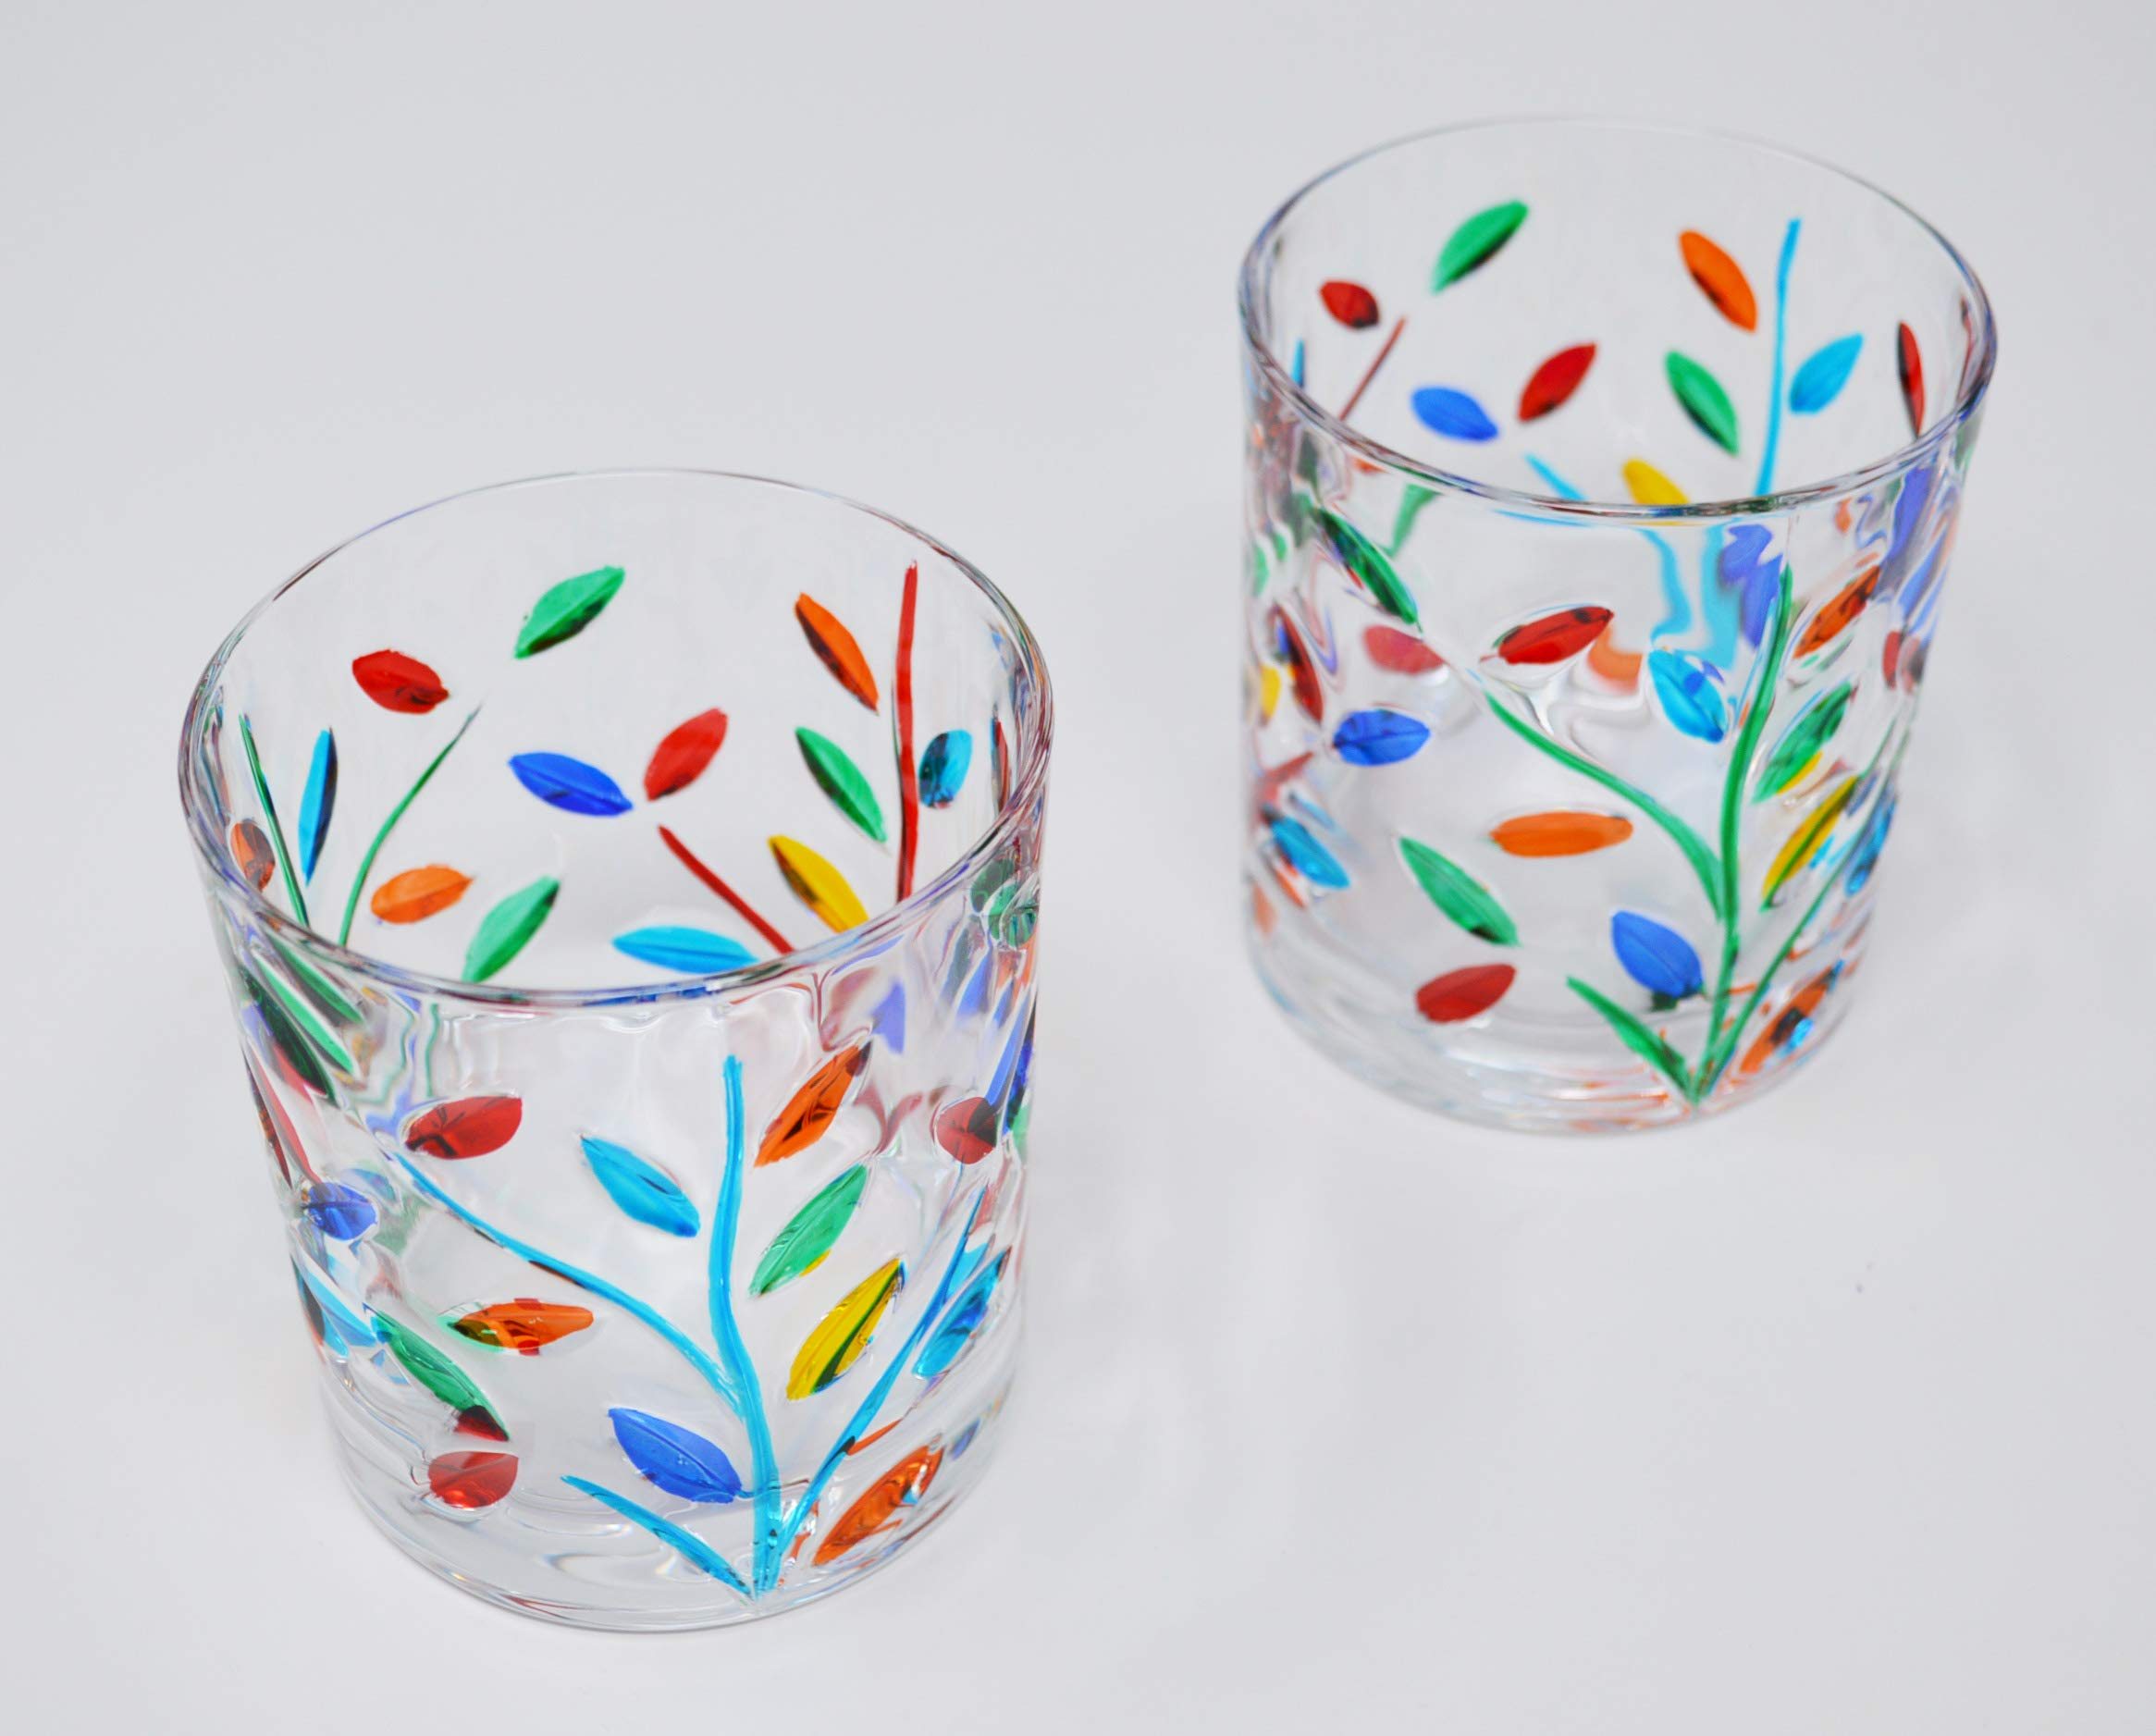 Venetian Glass Small Glasses, Flowervine Pattern, Set of 2 - Handmade Glass from Italy